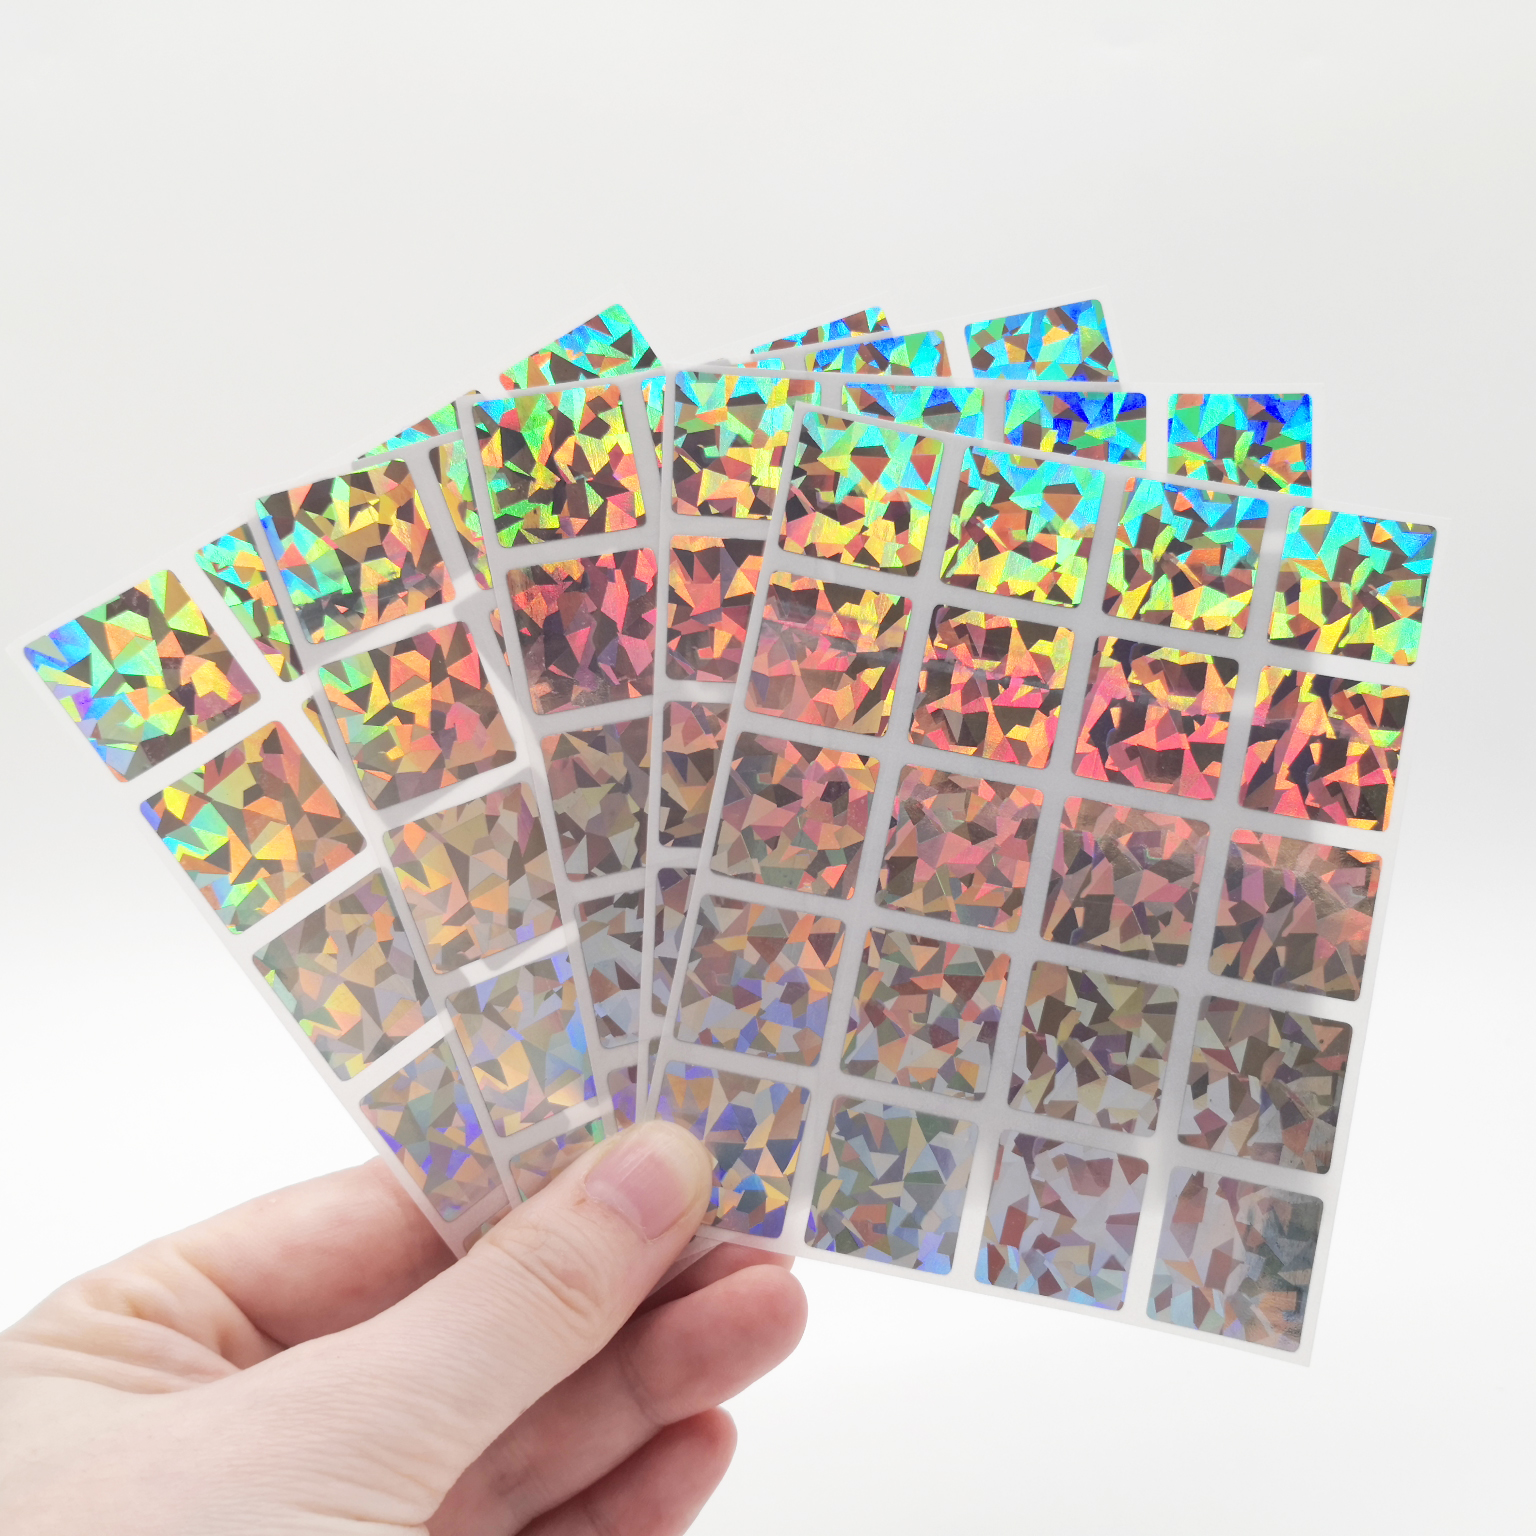 300Pcs Scratch Off Stickers 20*20mm Square Diamond Laser Color Metallic Hologram Game Scratch Sticker   Wedding Card